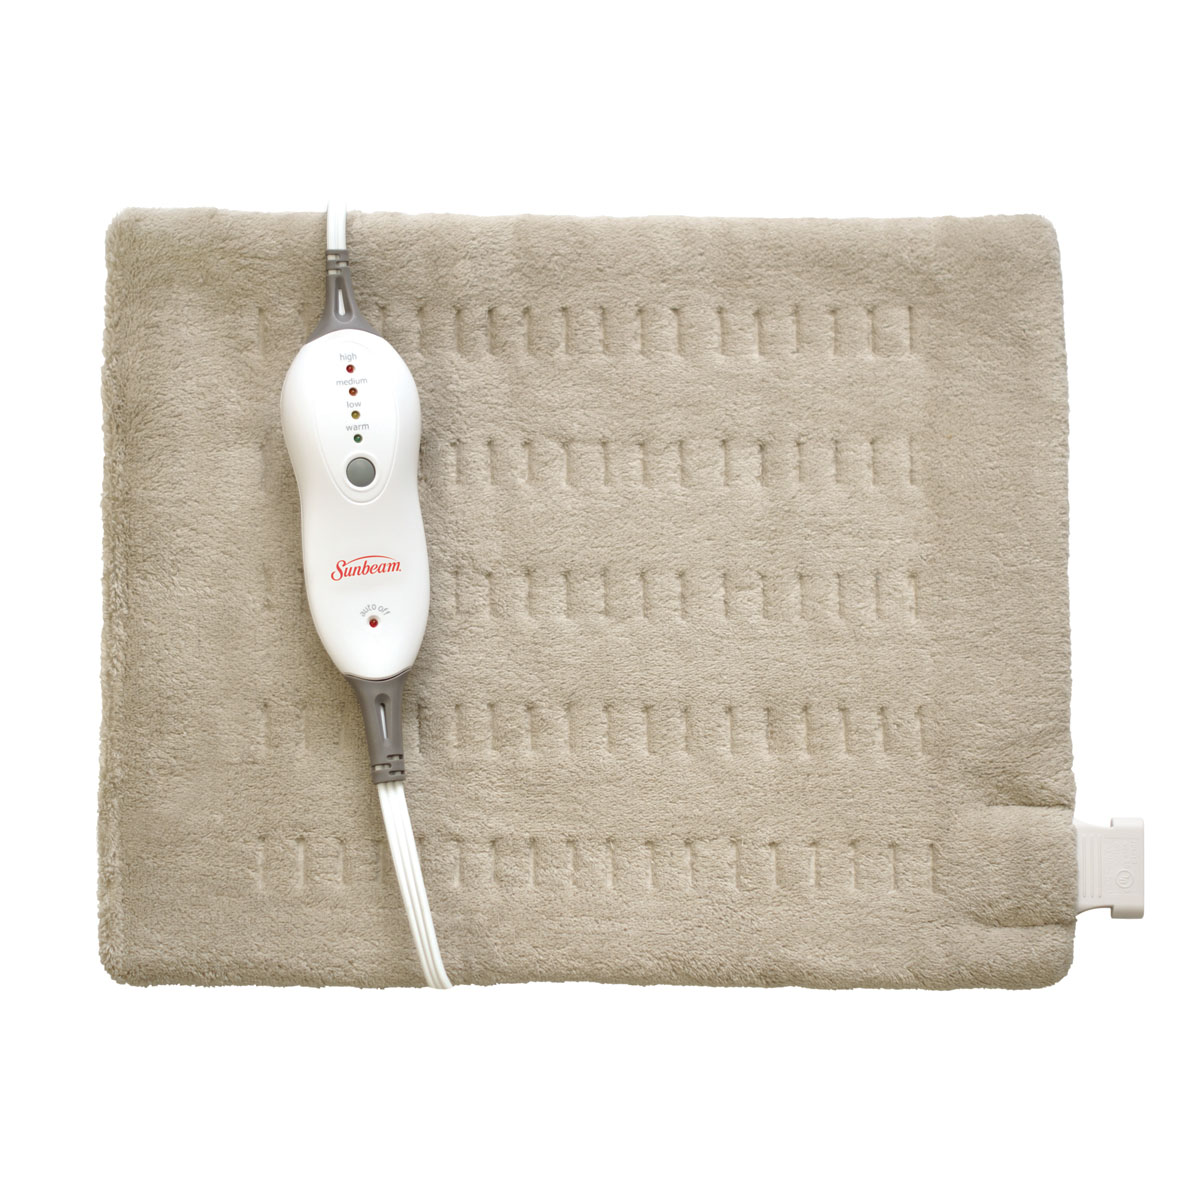 Sunbeam® Heating Pad with Digital LED Controller, King